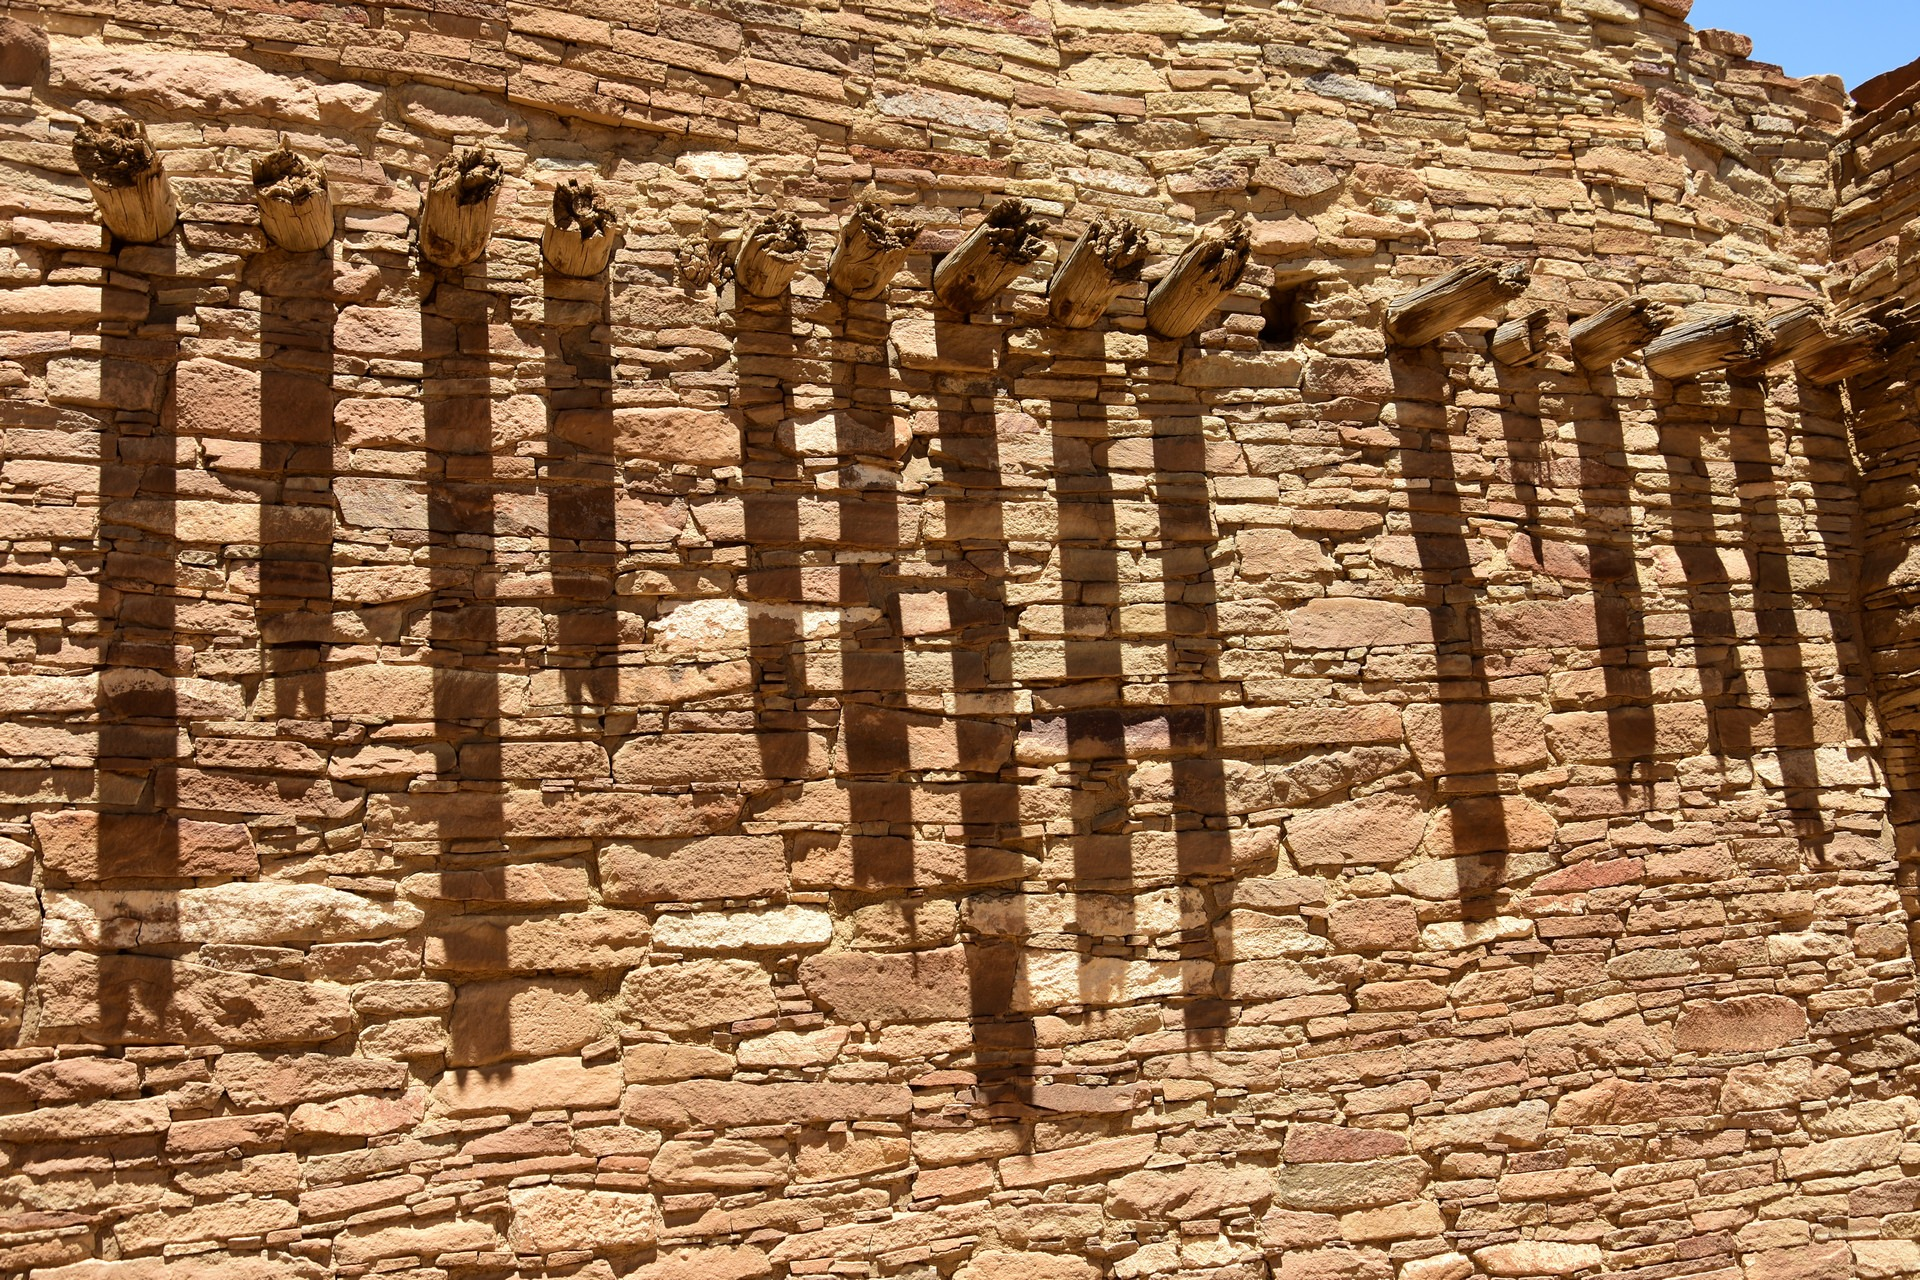 Chaco Cultures National Historical Park